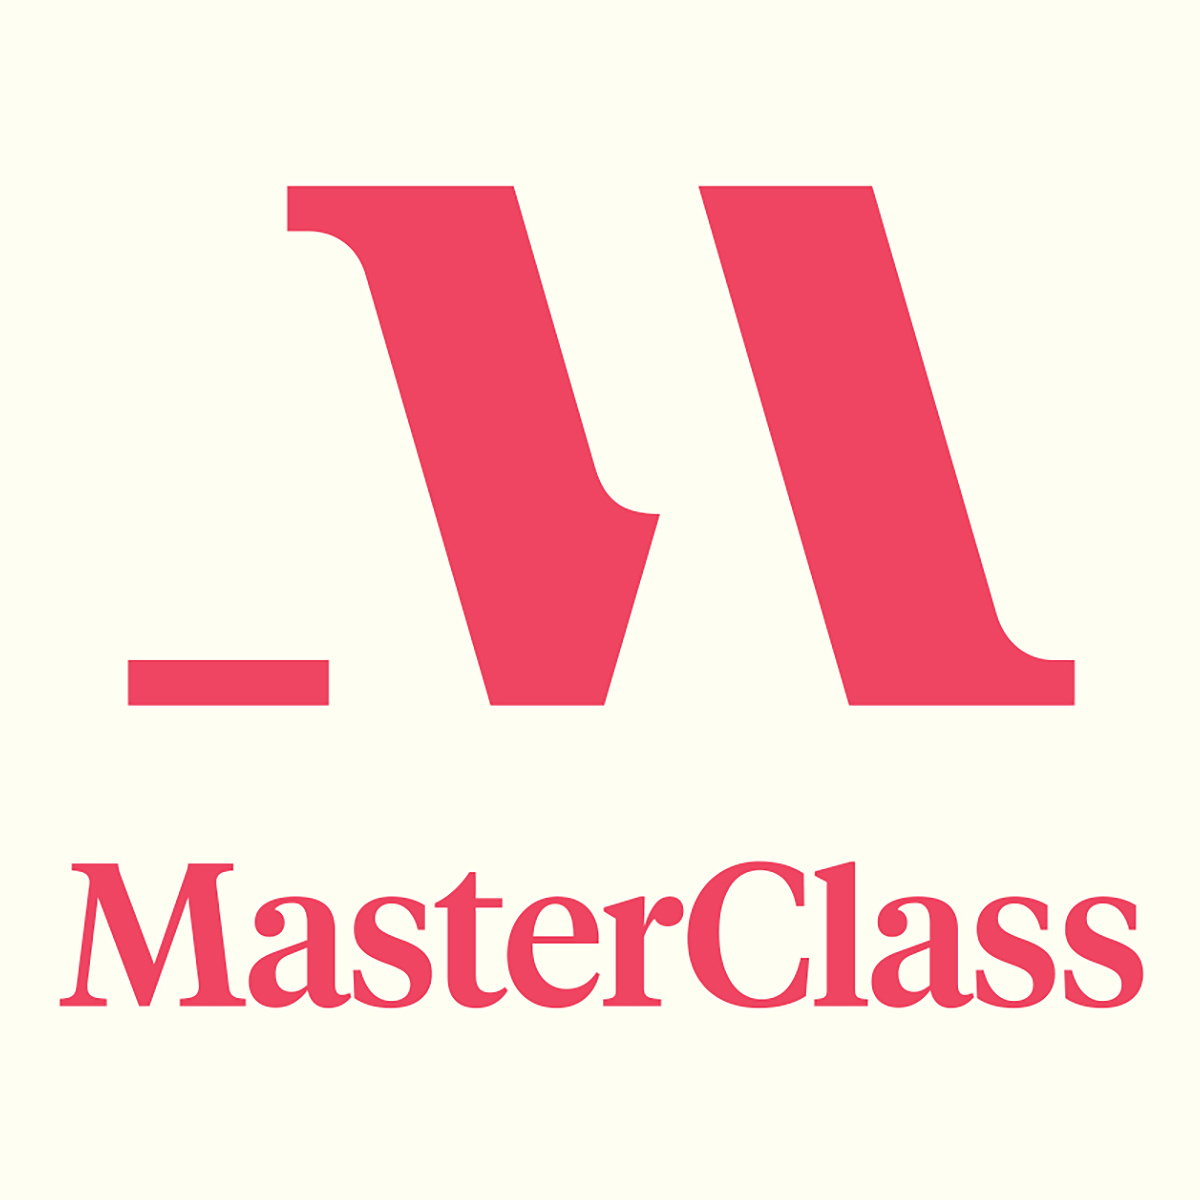 MasterClass Underscores Diversity of Thought and Knowledge Through New Brand Identity